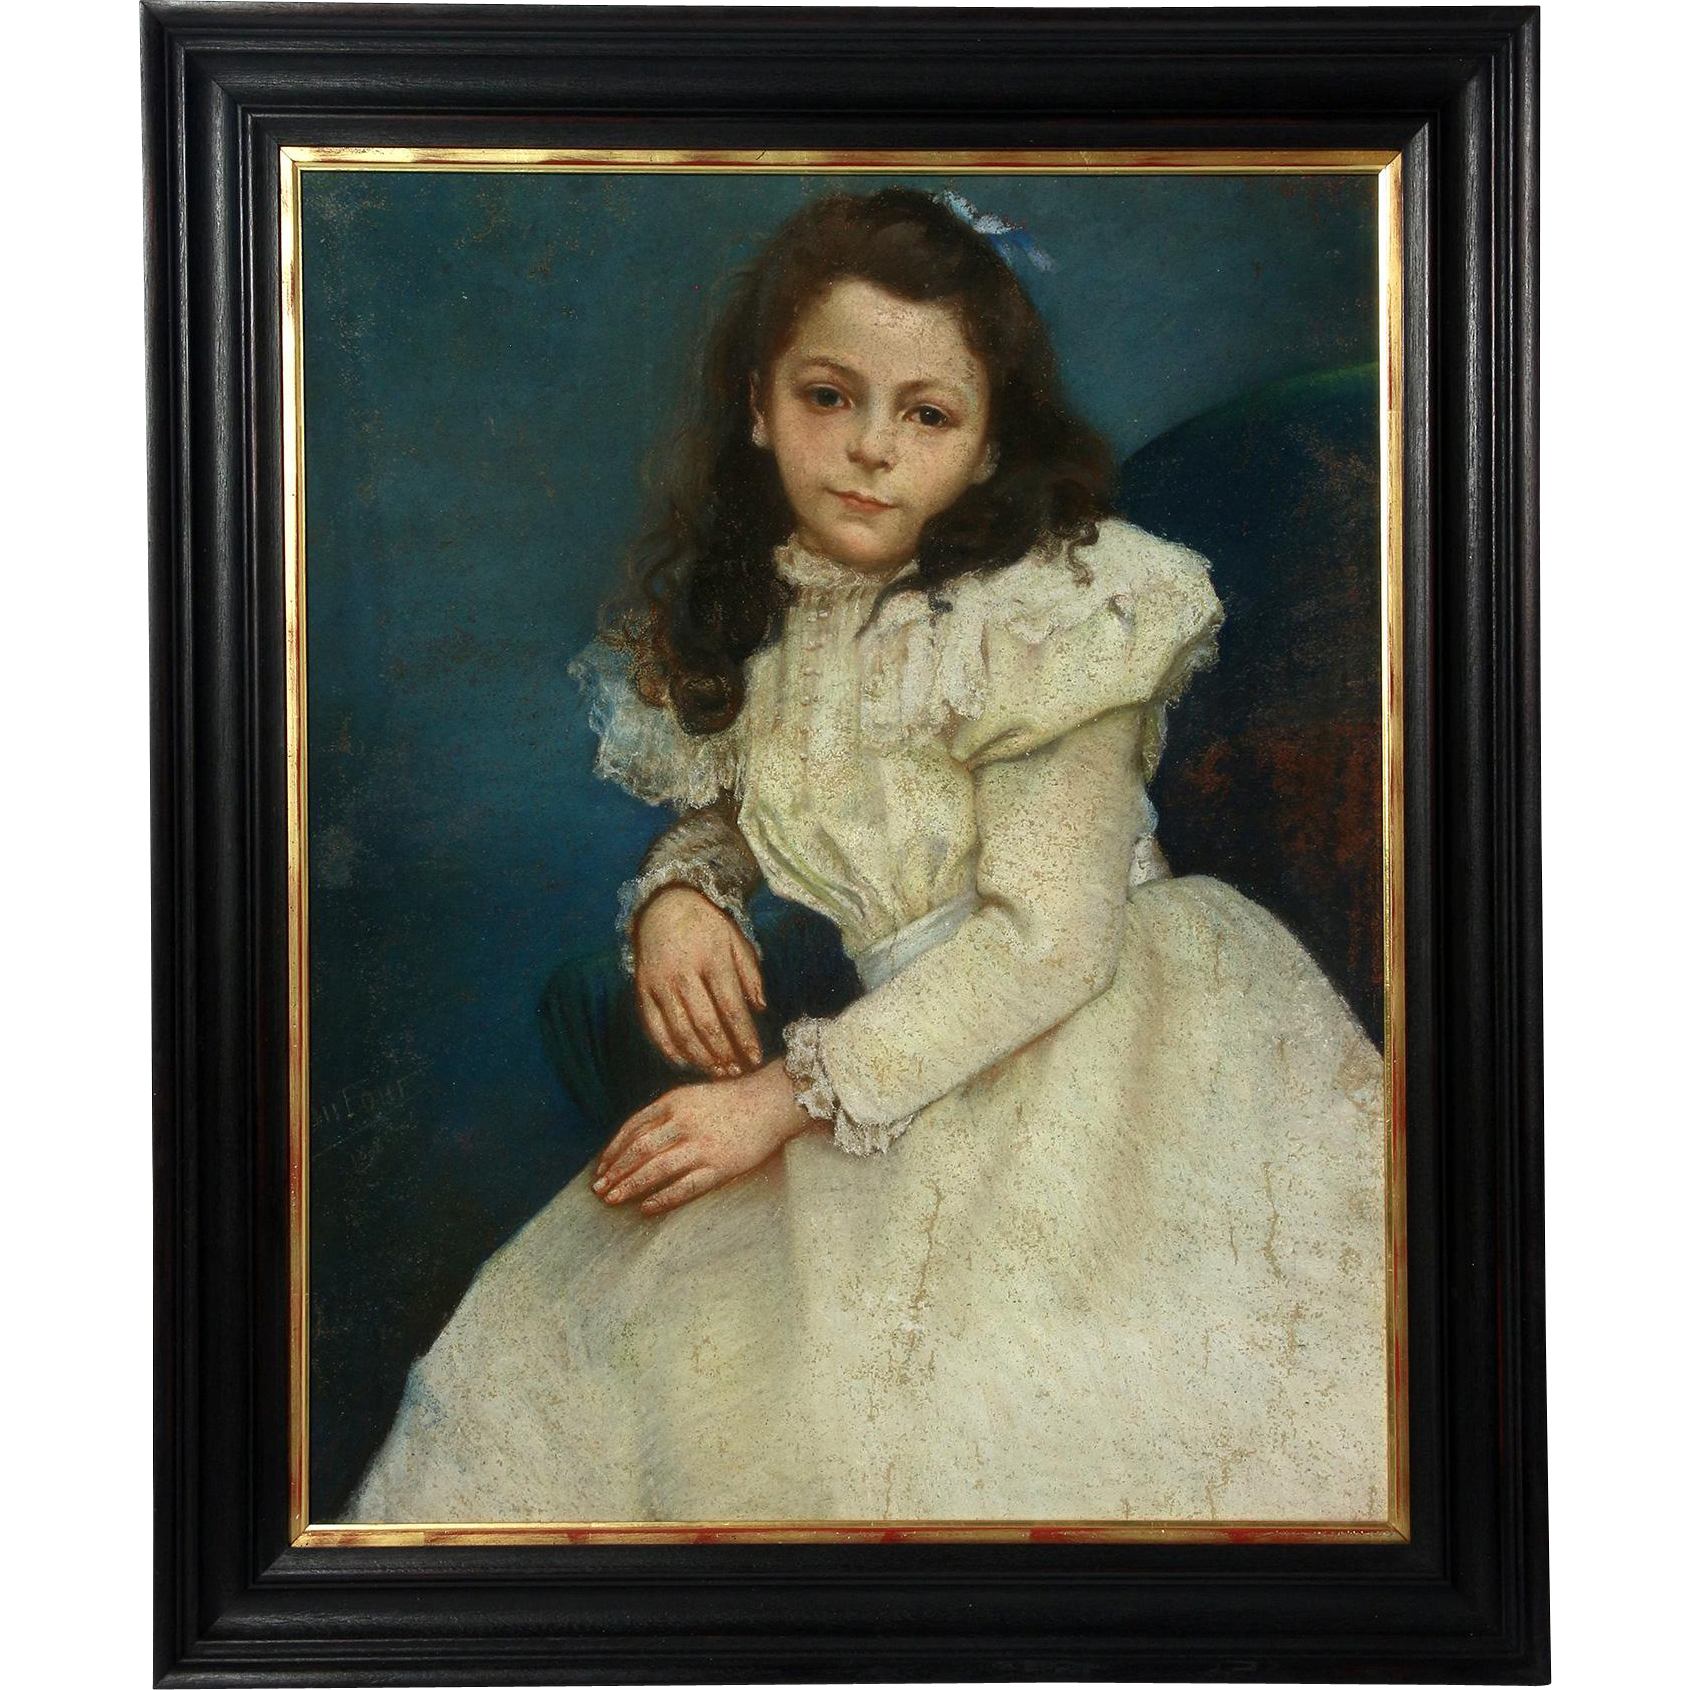 Signed Pastel Painting of Girl in White Dress- French circa 1898